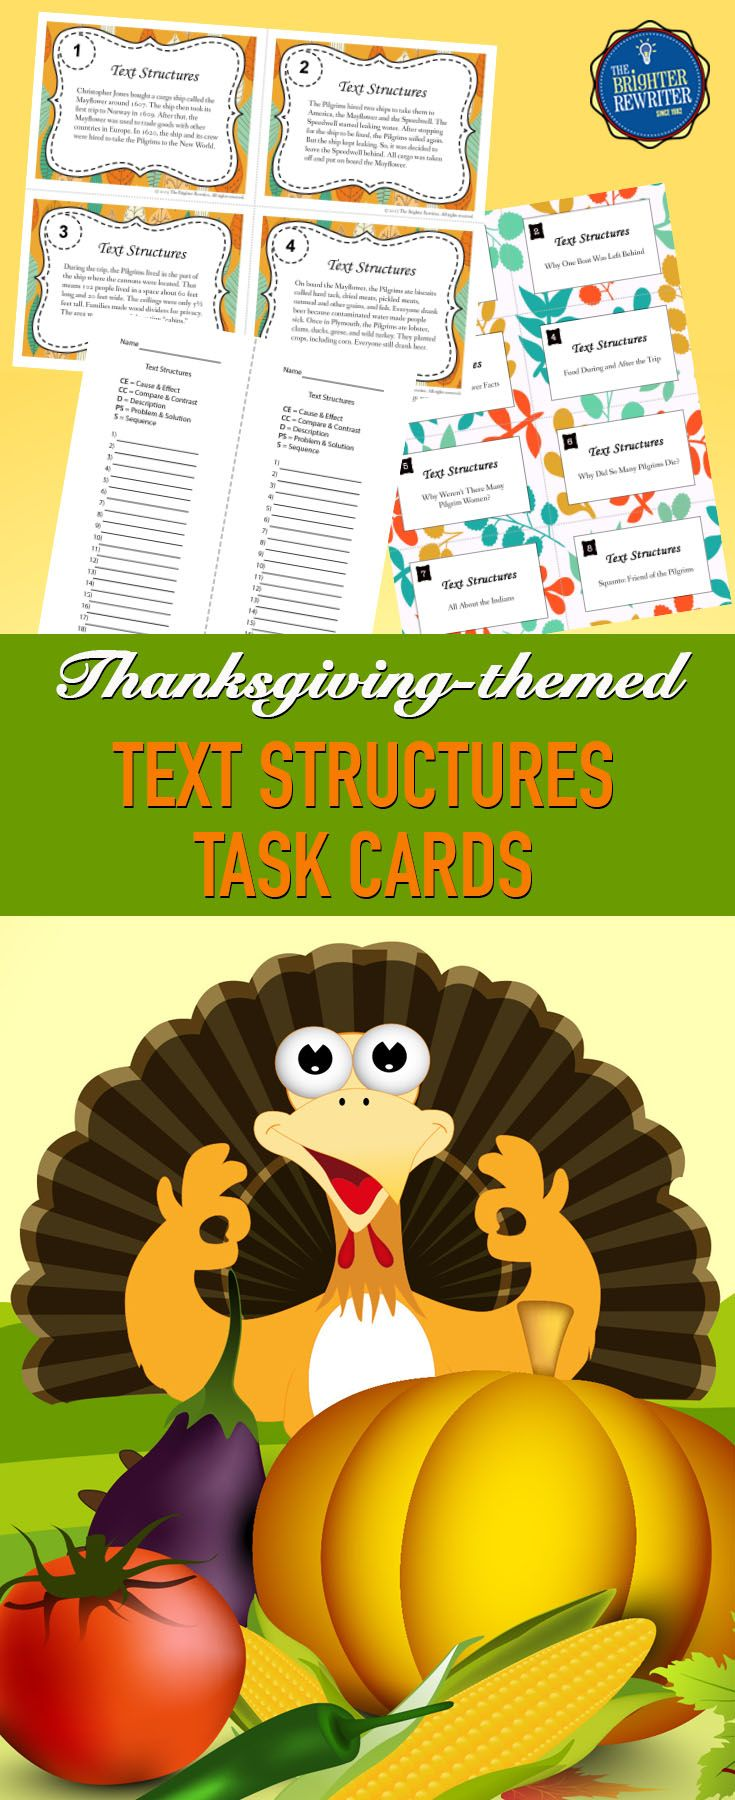 Thanksgiving Text Structures Task Cards Task cards